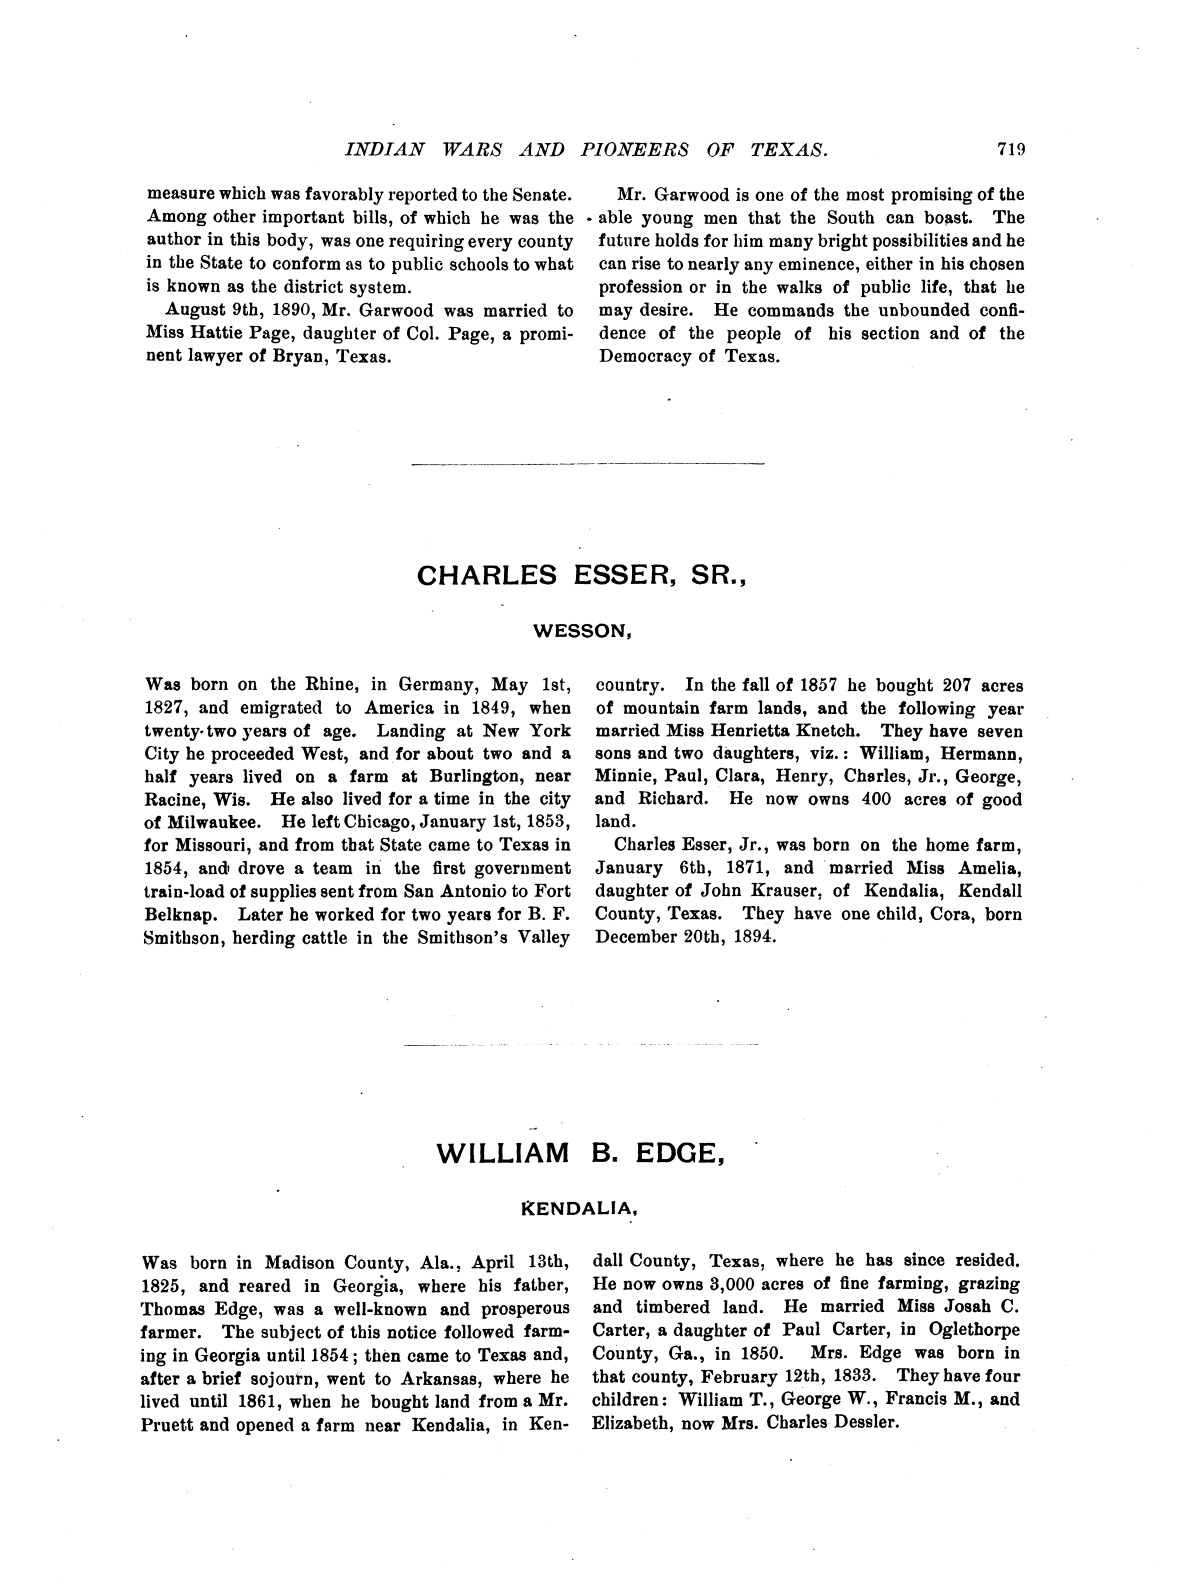 Indian wars and pioneers of Texas / by John Henry Brown.                                                                                                      [Sequence #]: 834 of 894